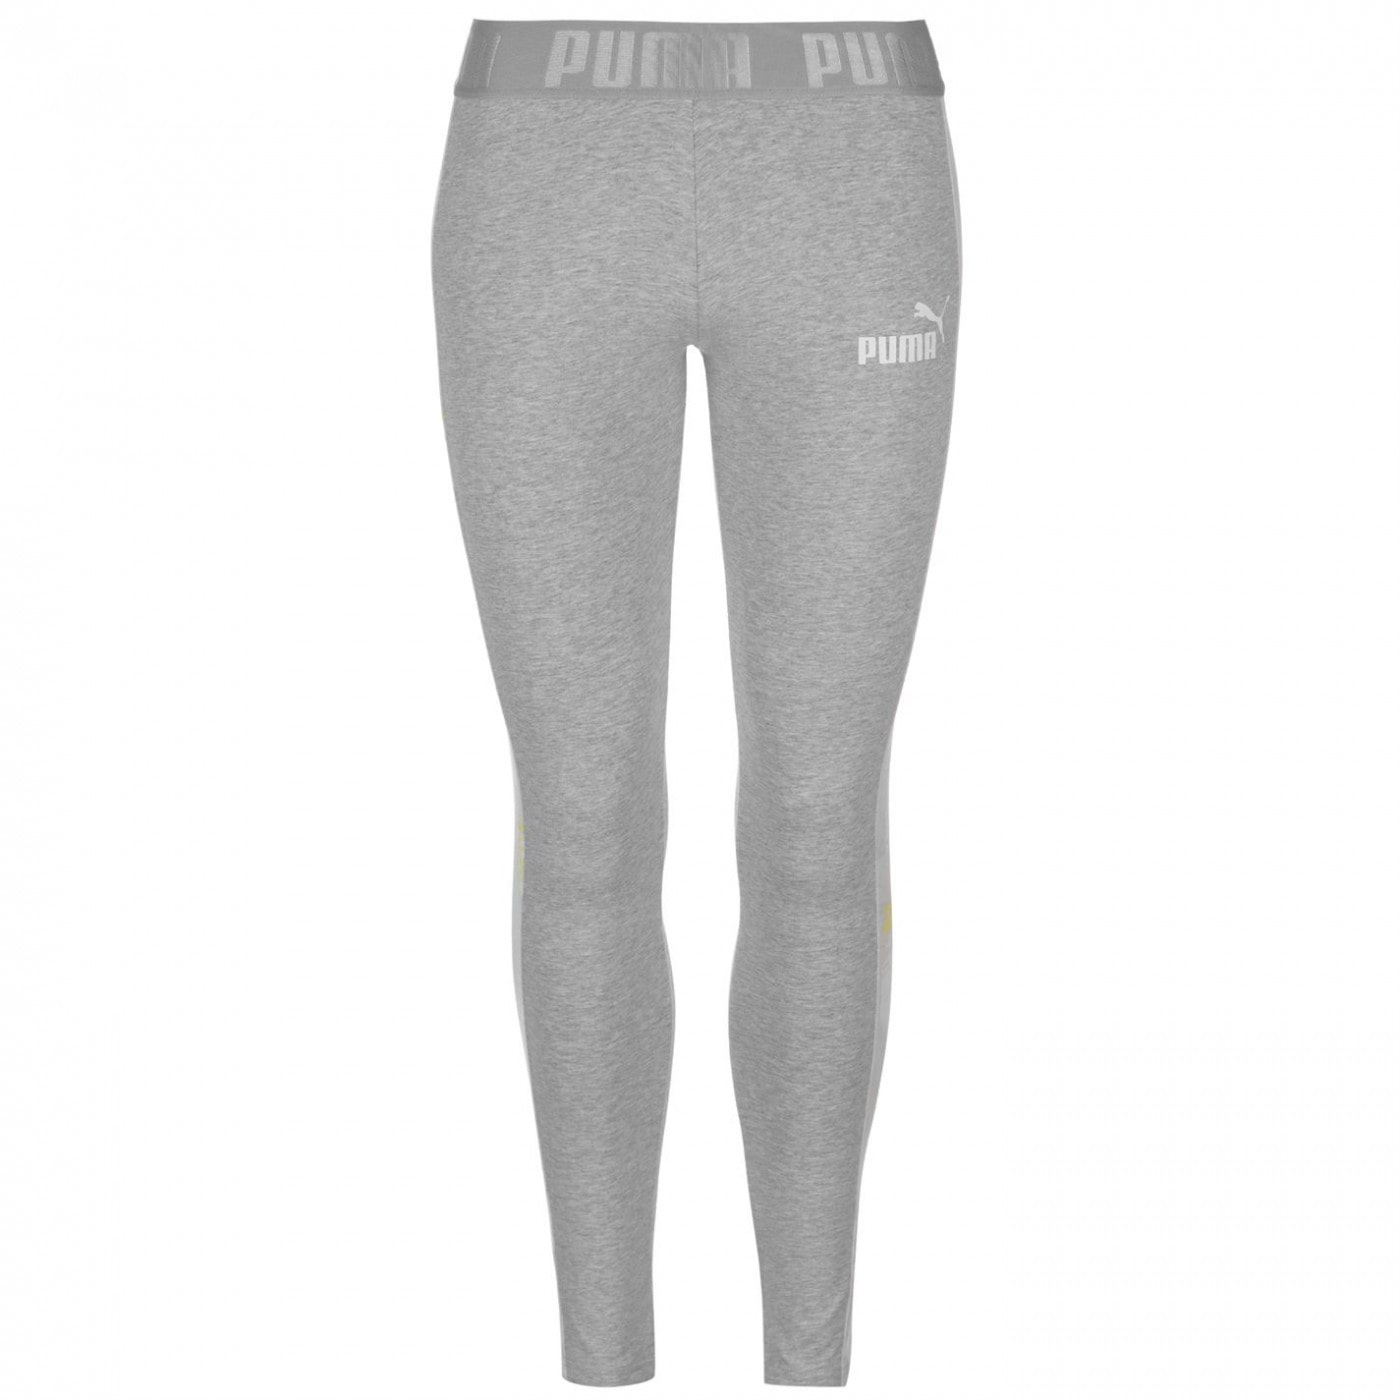 Puma Leggings Ladies